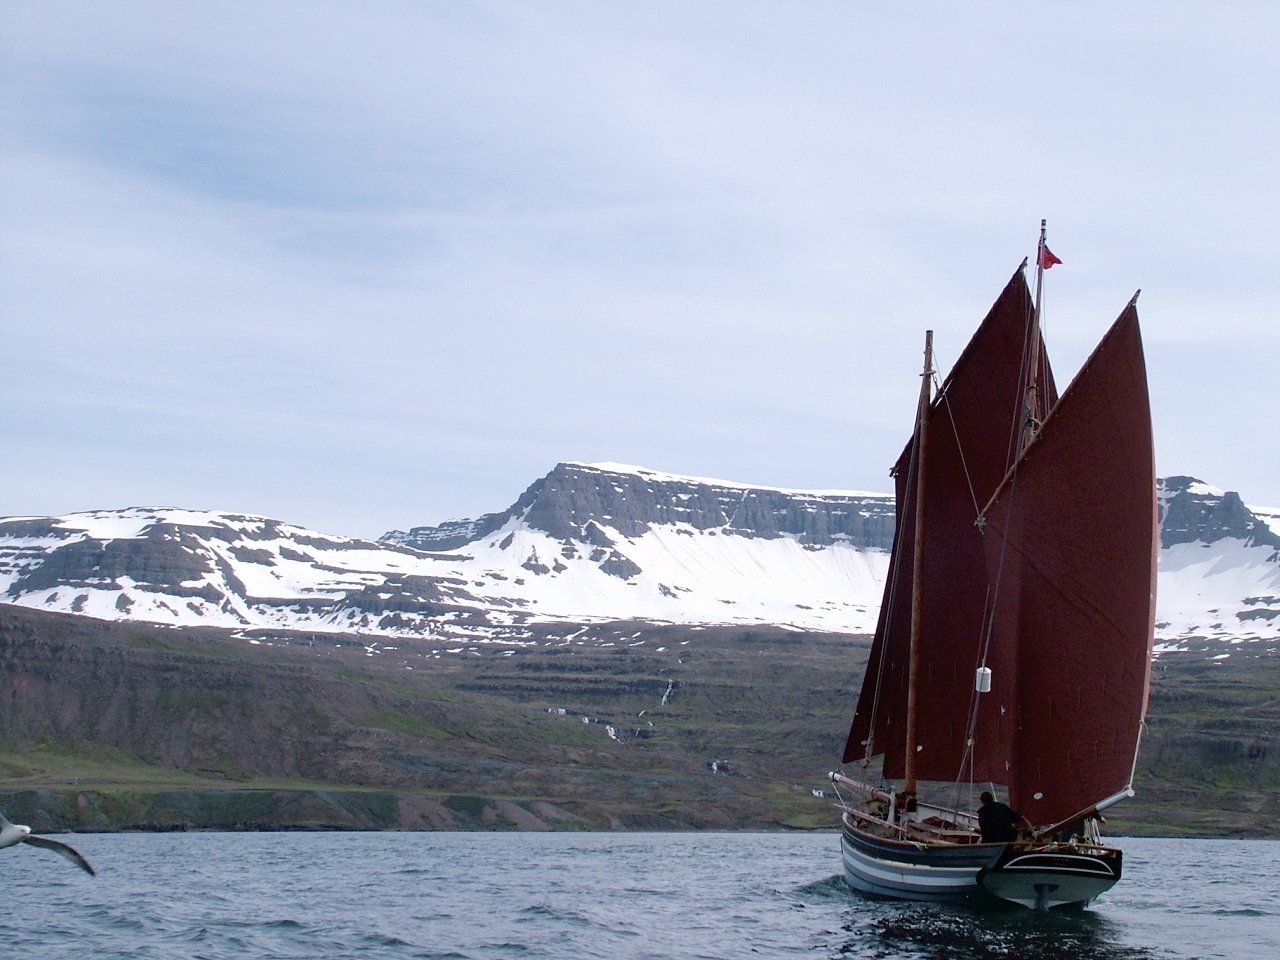 18th century-style lugger Alert back from Iceland – and for sale | intheboatshed.net